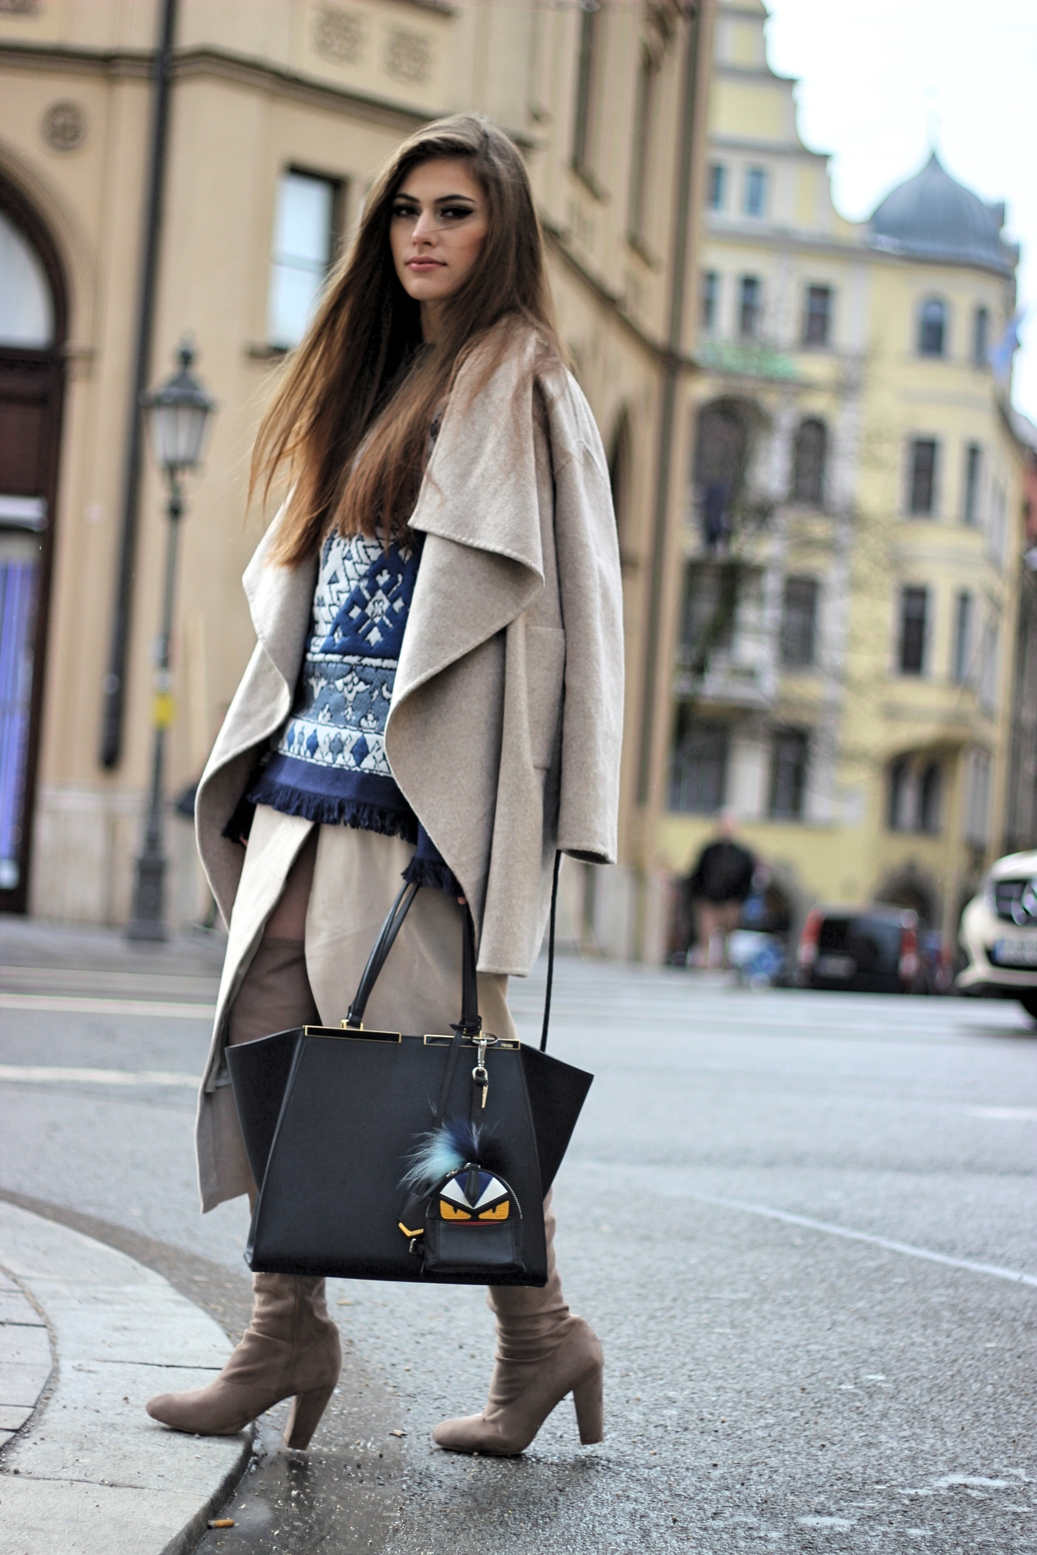 streetstyle-munich-germany-fendi-bagcharm-bagpack-fur-zara-coat-tory-burch-sweater-overknees